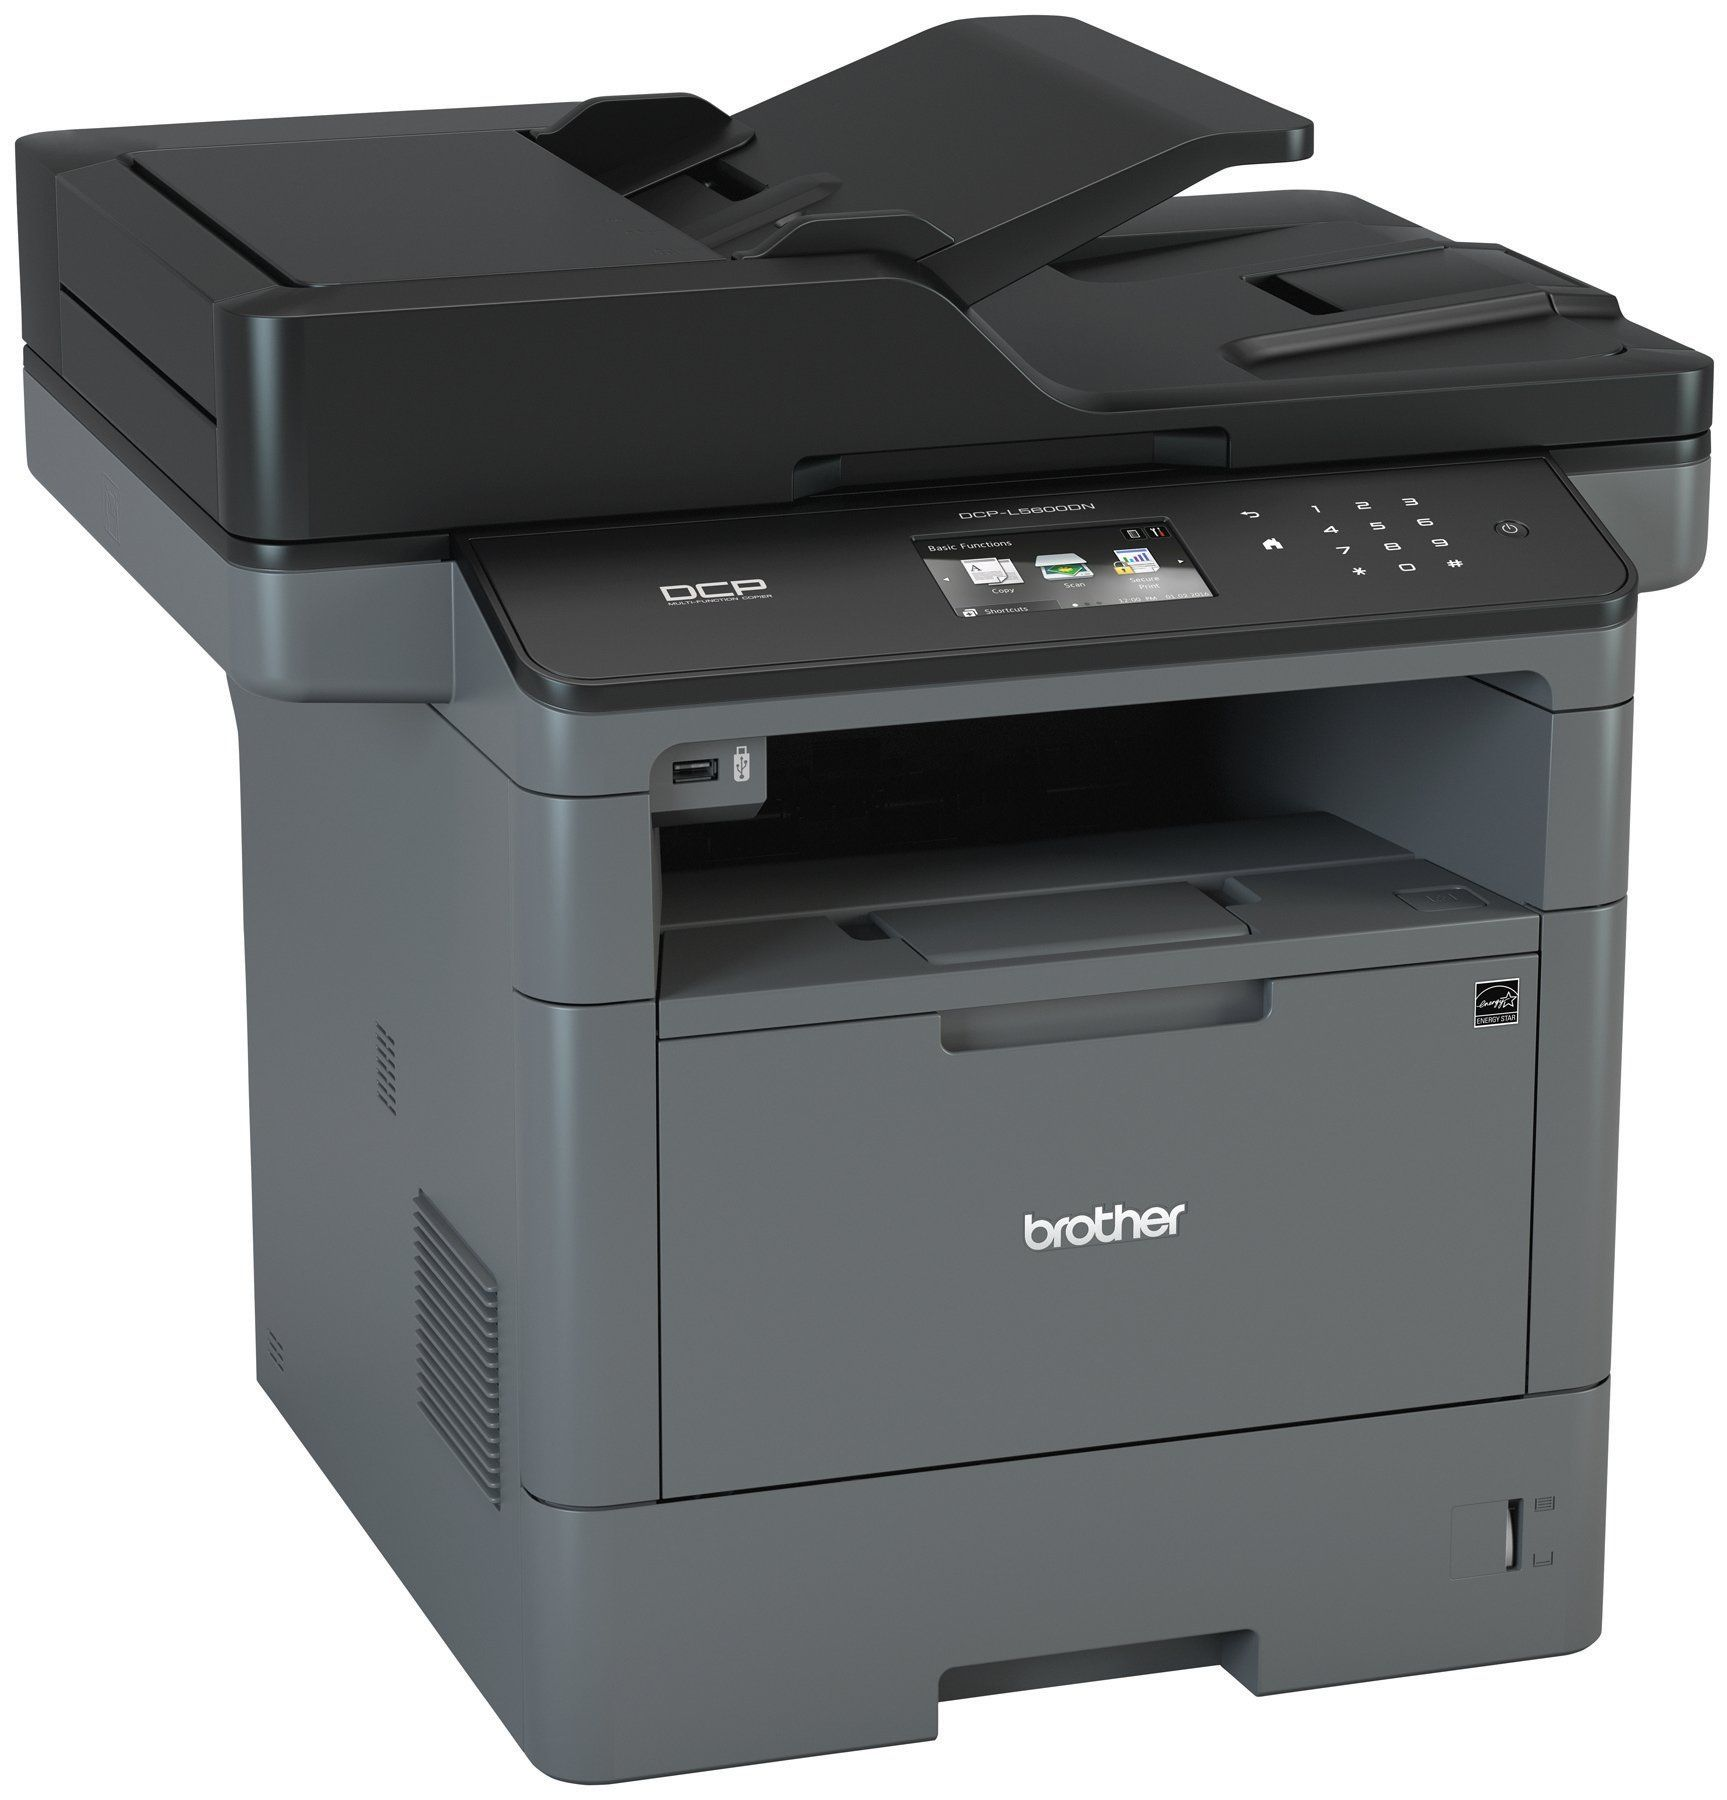 Brother monochrome laser printer multifunction printer and copier